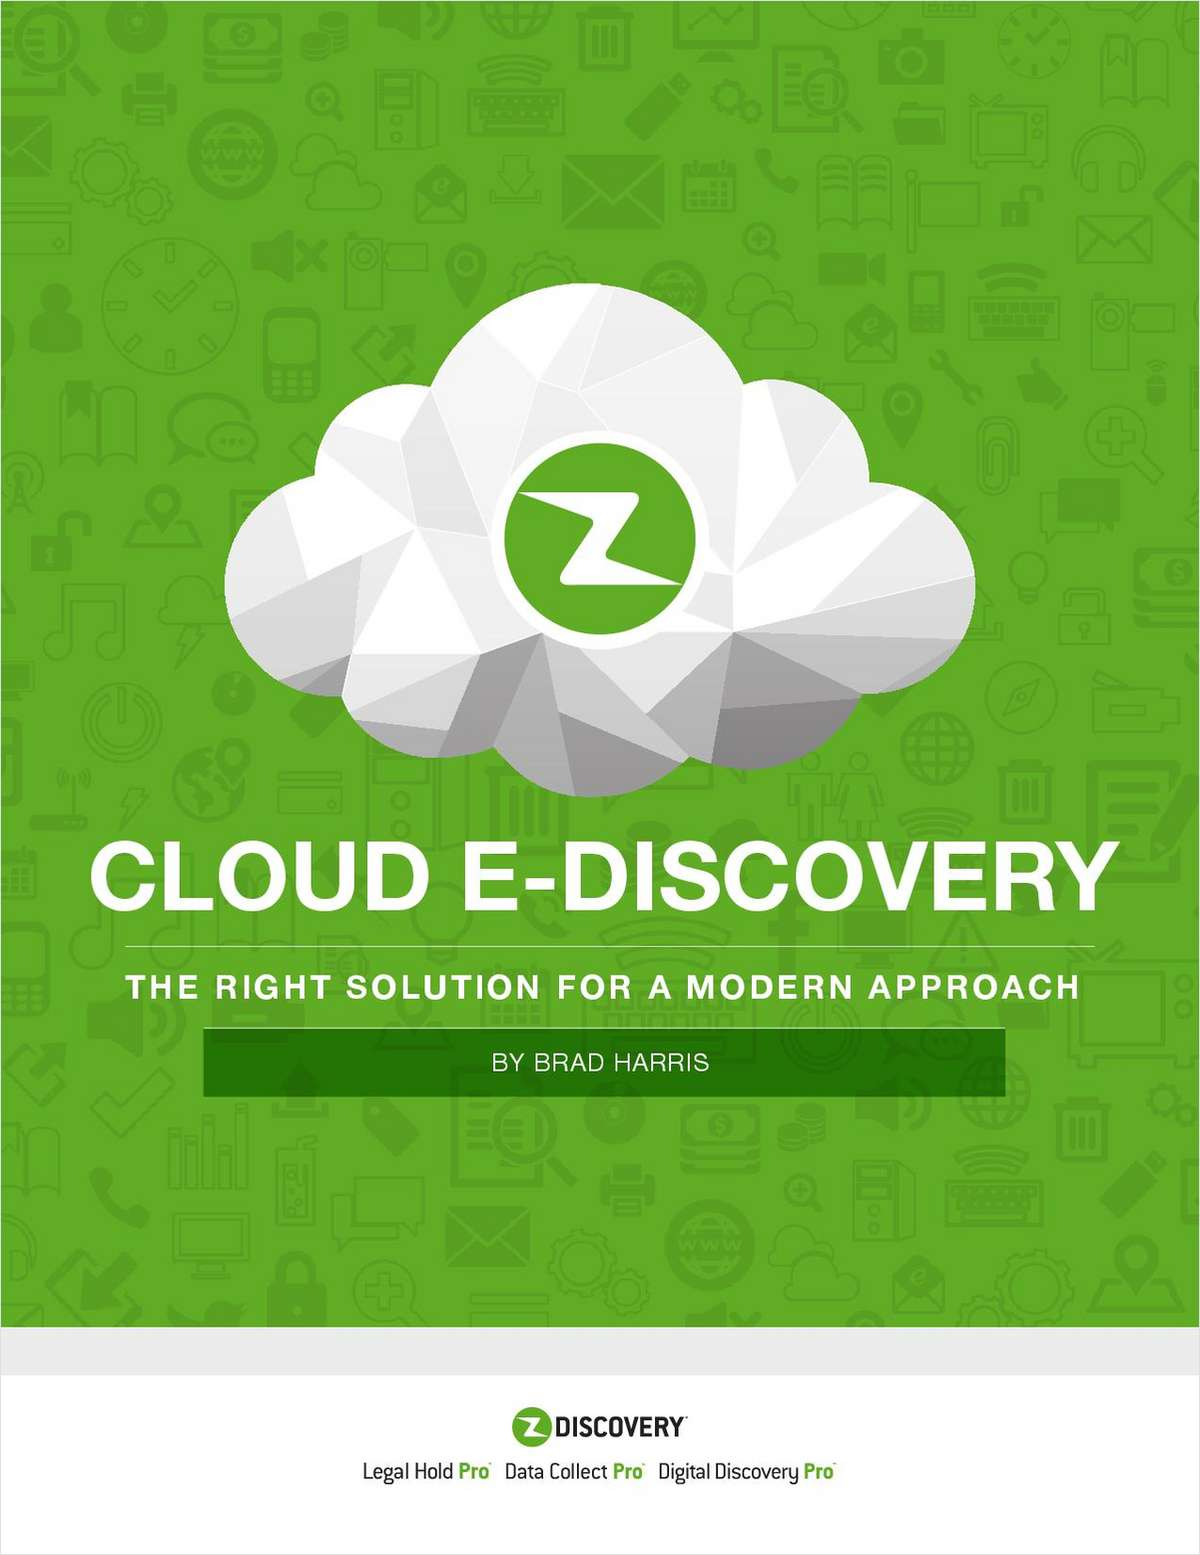 Cloud E-Discovery -The Right Solution for a Modern Approach